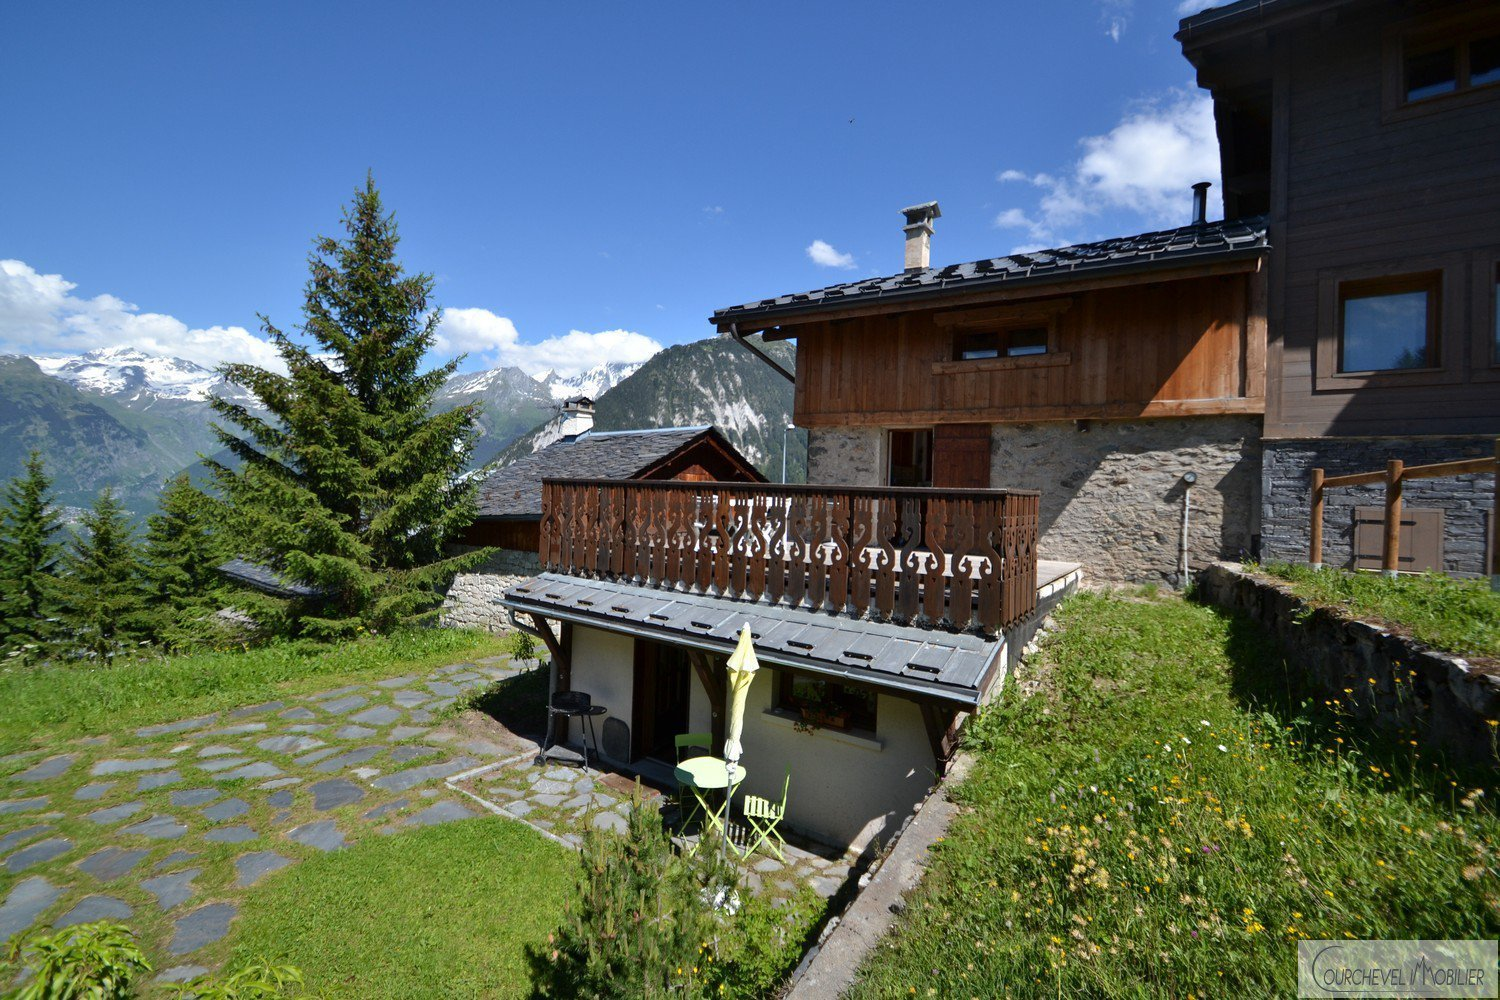 Huur Chalet - Courchevel Village 1550